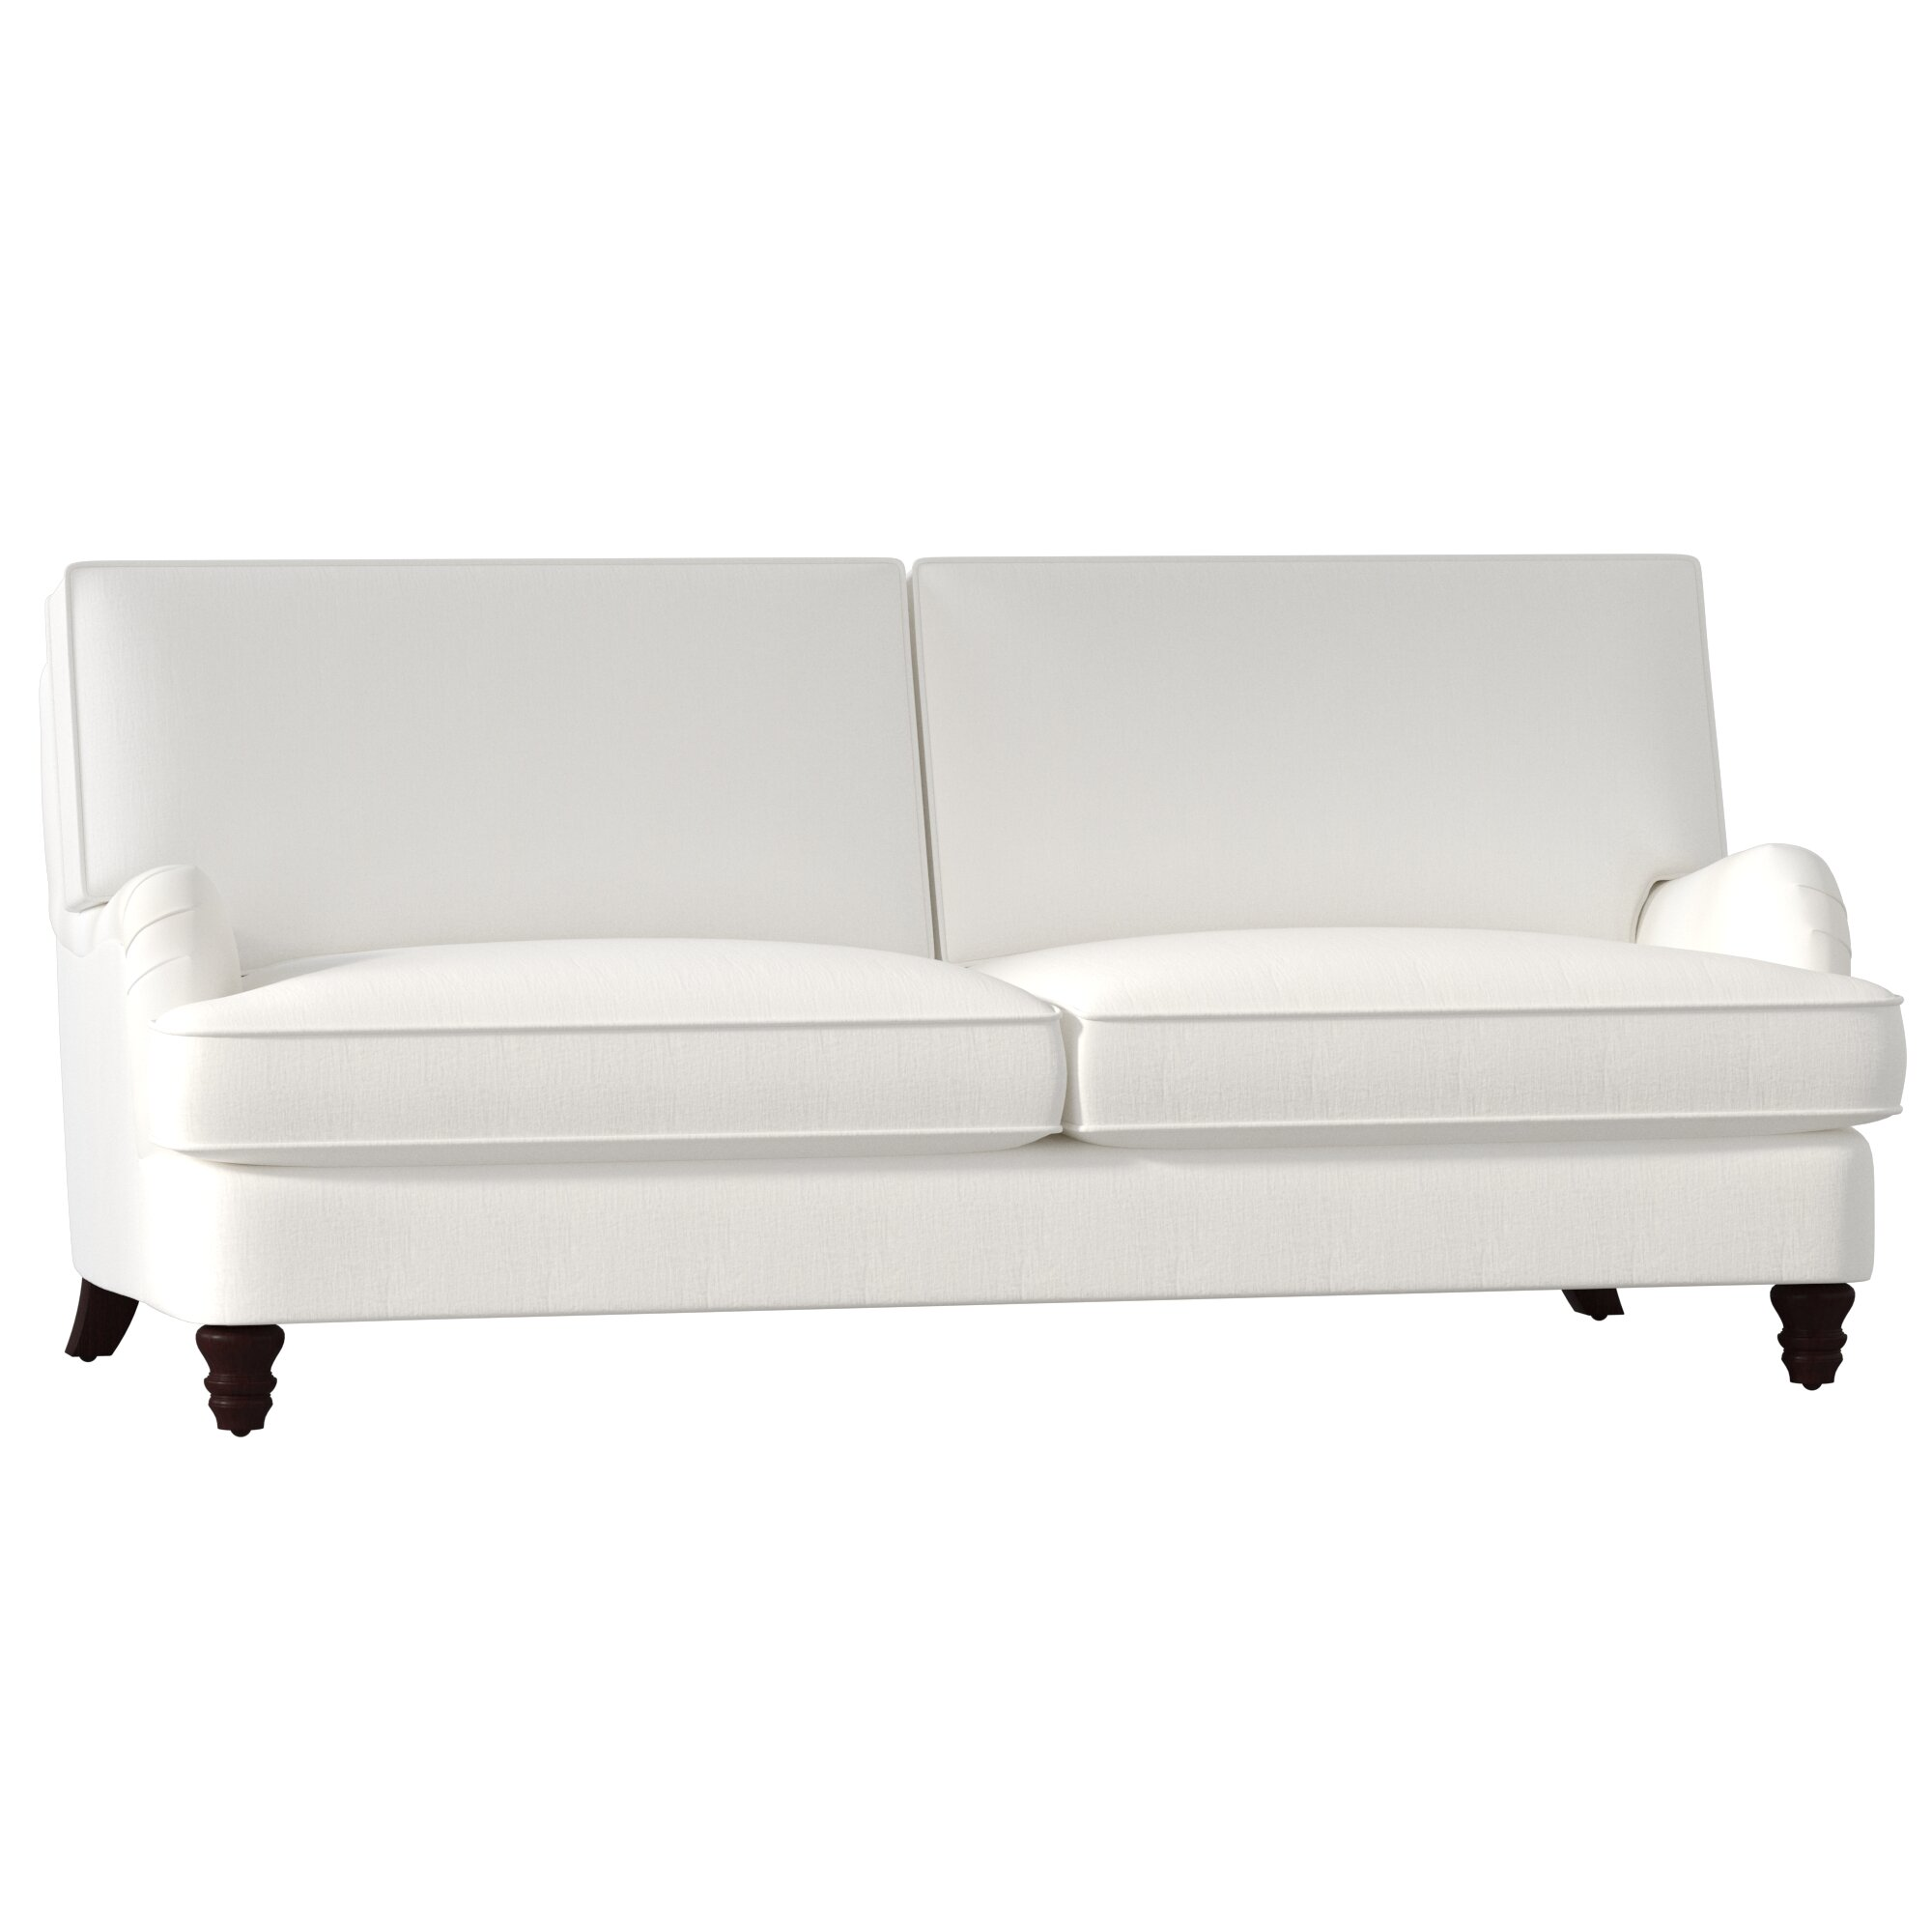 stkittsvilla bug glif sofas covers washing com www ektorp couch bed kivik sofa cover marvelous org in and ikea